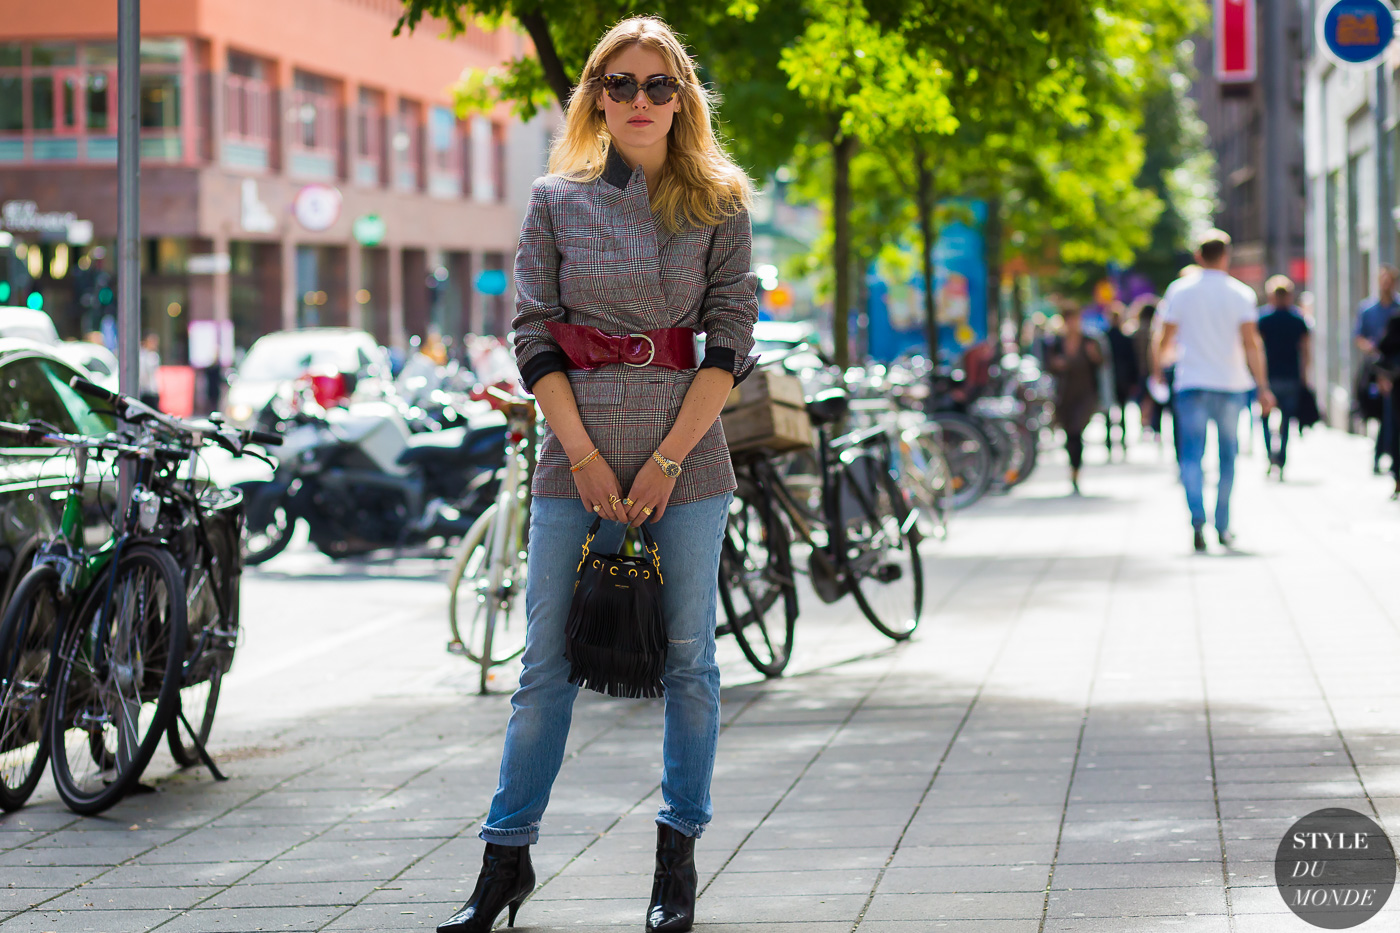 annabel-rosendahl-by-styledumonde-street-style-fashion-photography